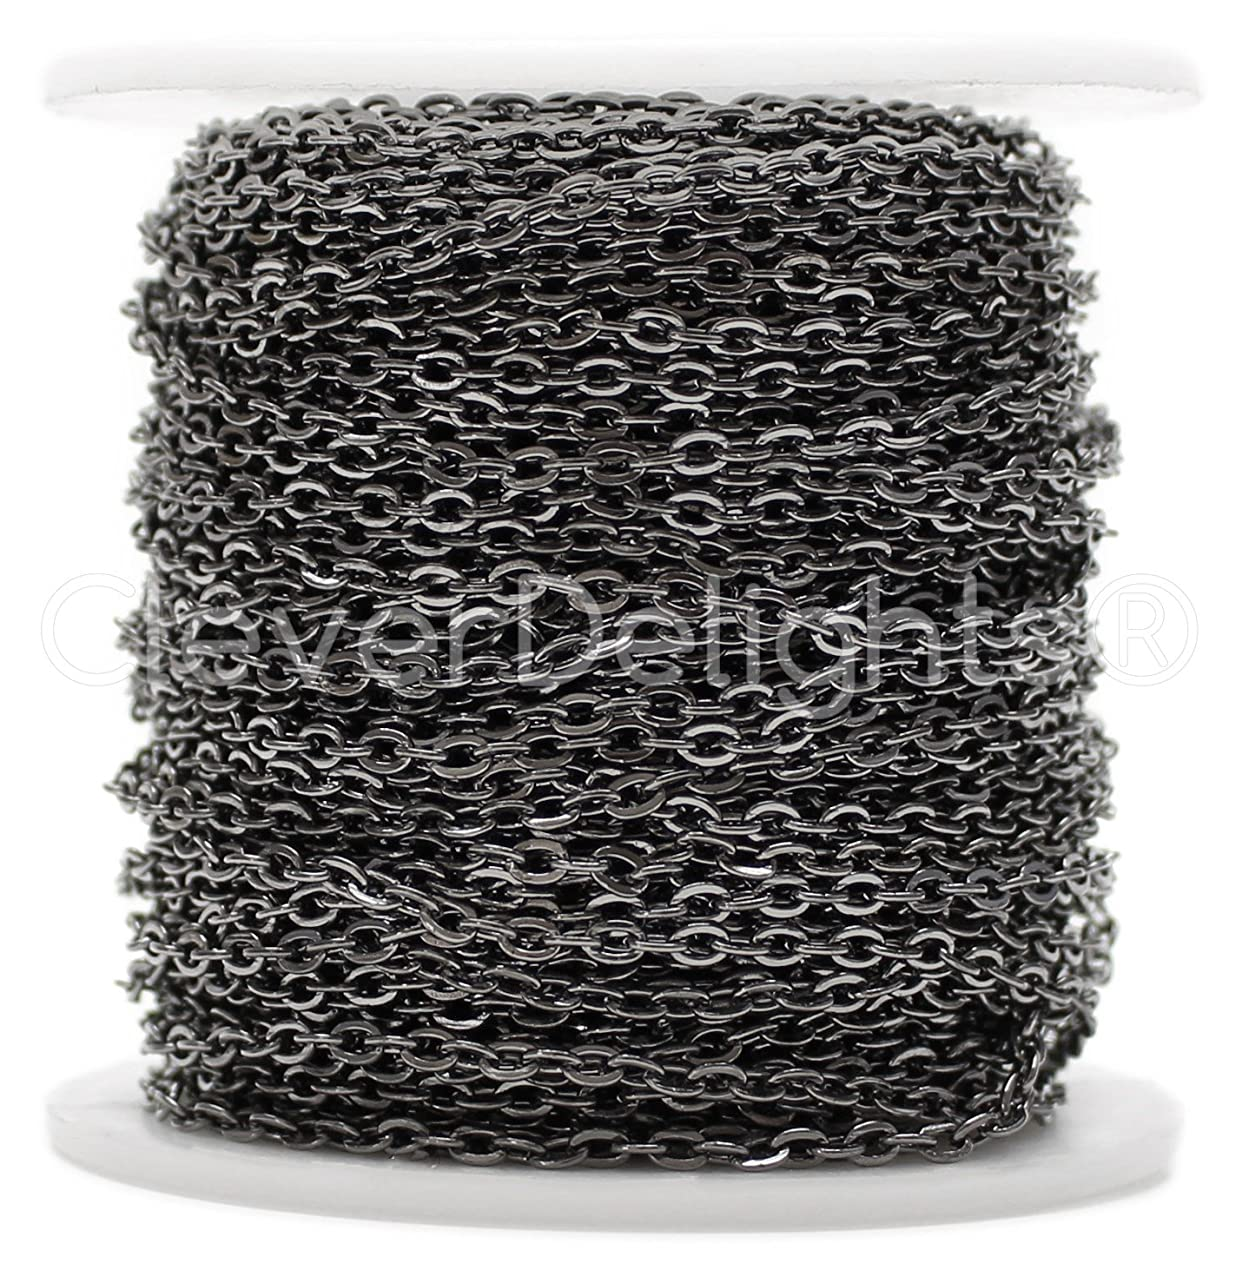 CleverDelights Cable Chain Spool - 100 Feet - Gunmetal (Dark Silver) Color - 2x3mm Link